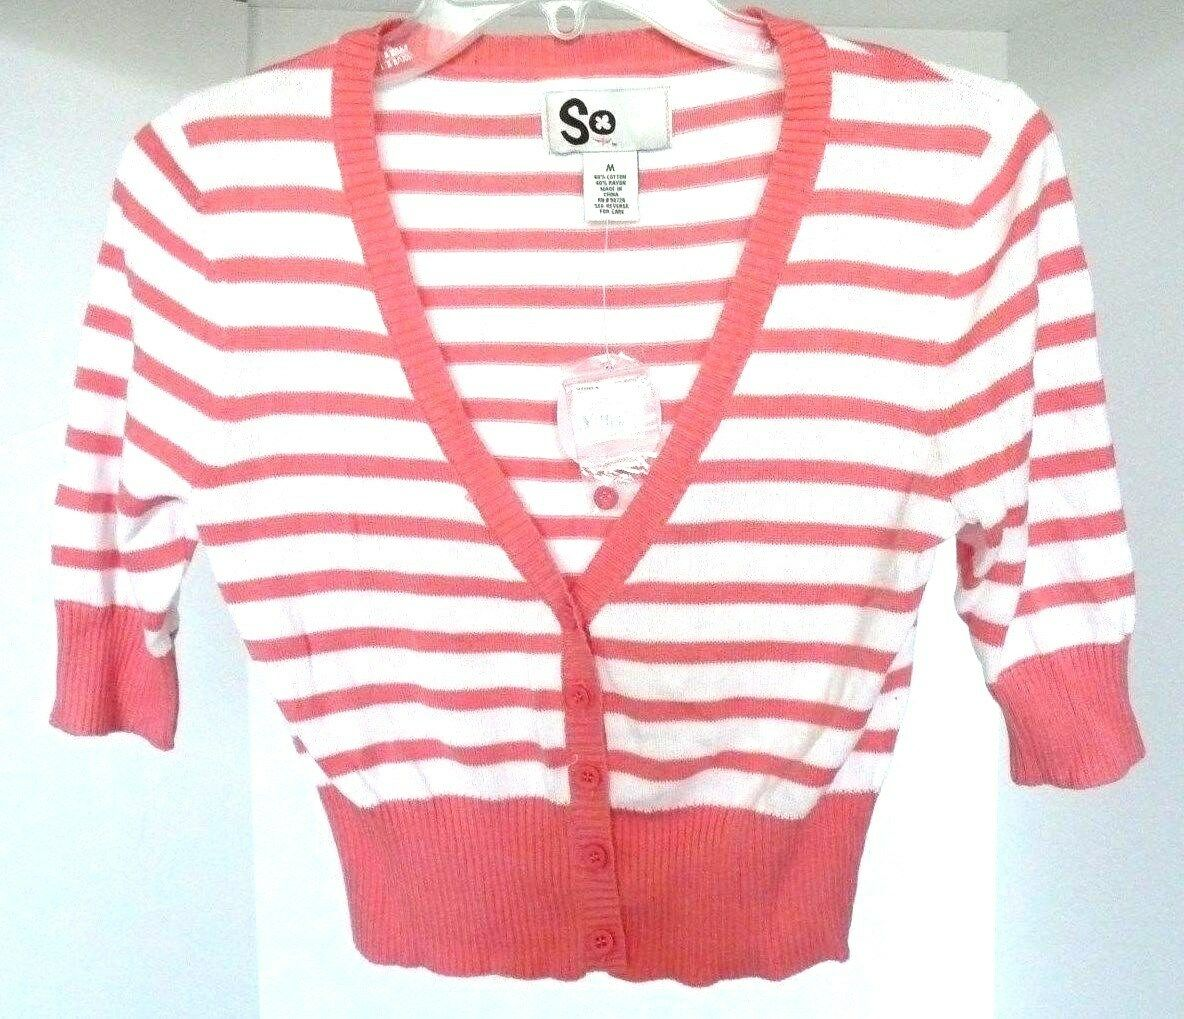 SO Juniors Pink & White Striped S/s Cropped Cardigan Sweater Size ...